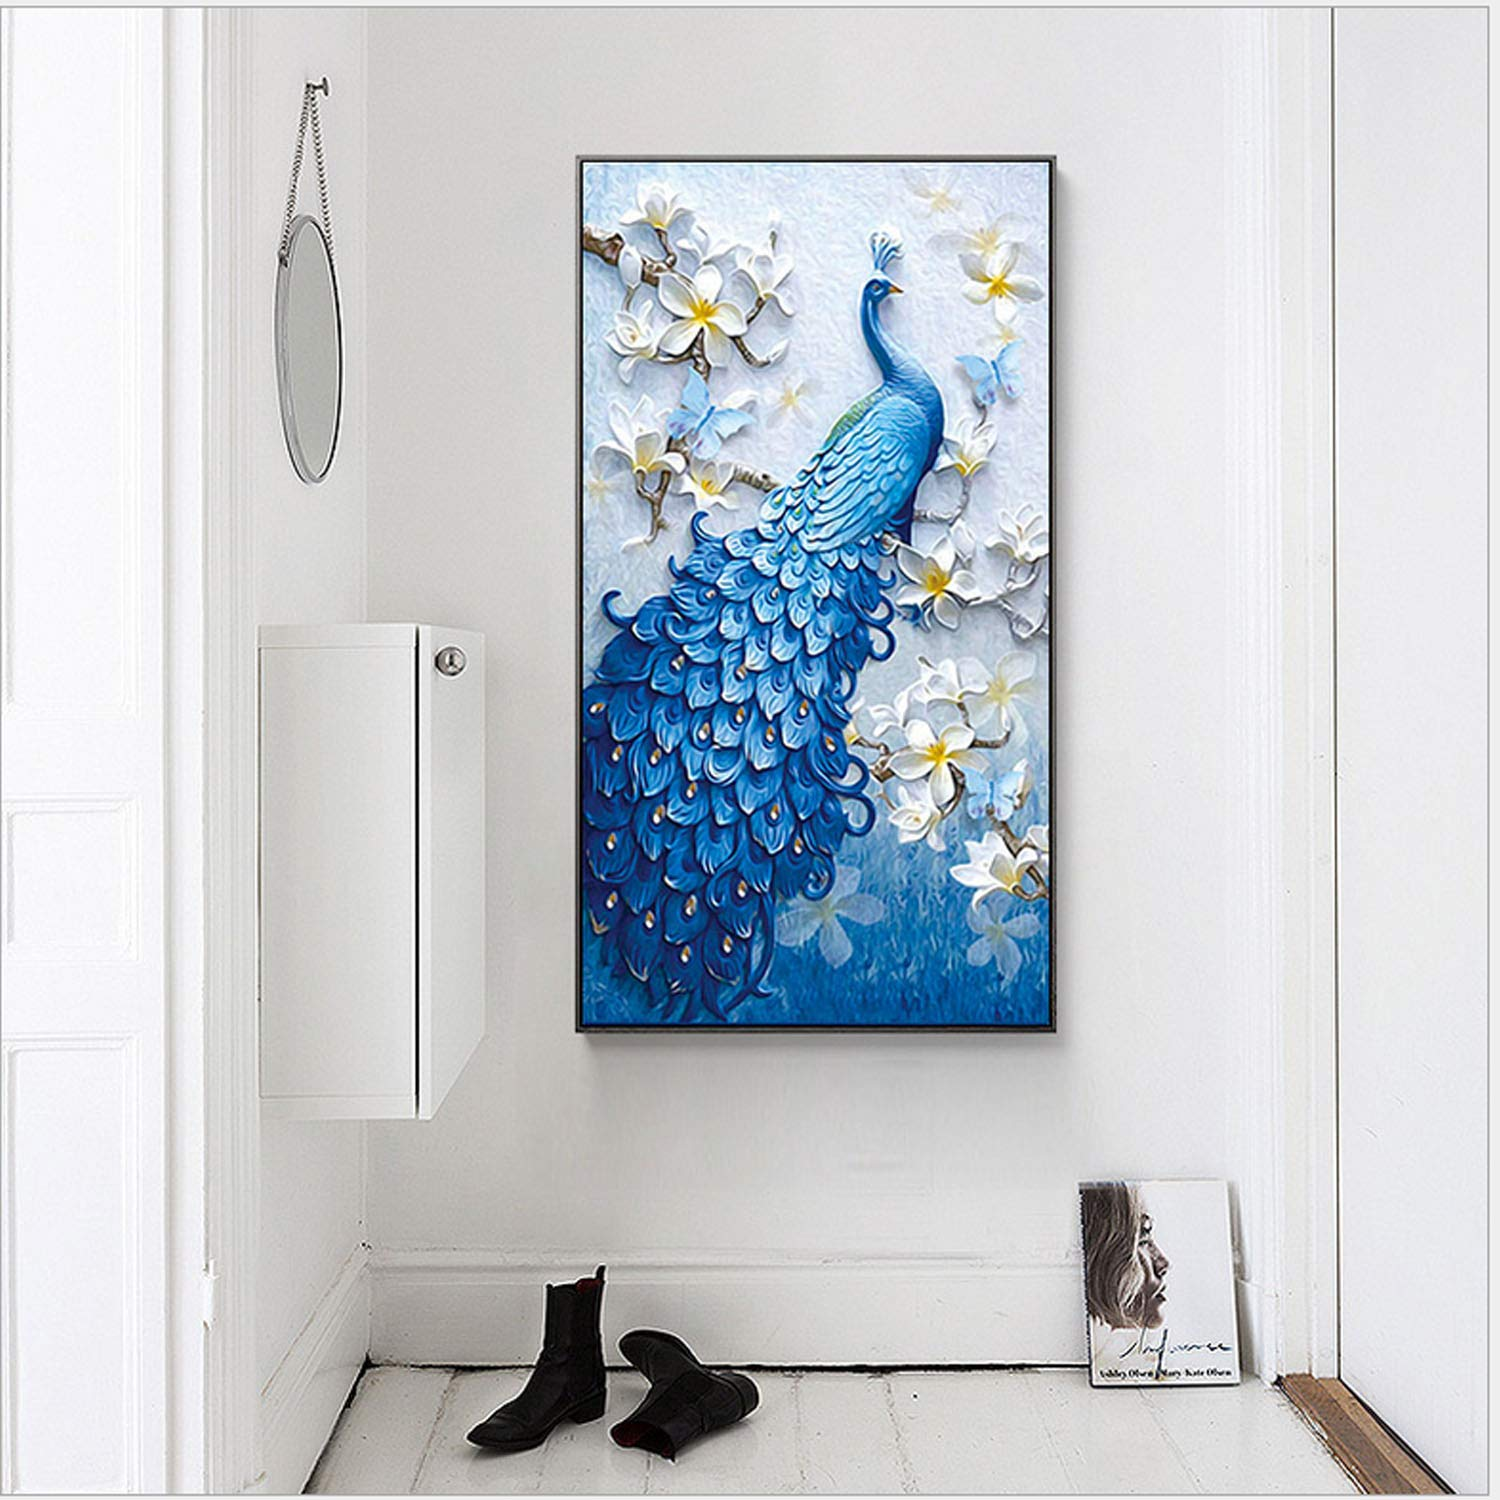 ANMUXI 5D Diamond Painting Kits Full Drill Special-Shaped 40X62CM Peacock DIY Diamond Art for Stress-Relief /& Home Decor